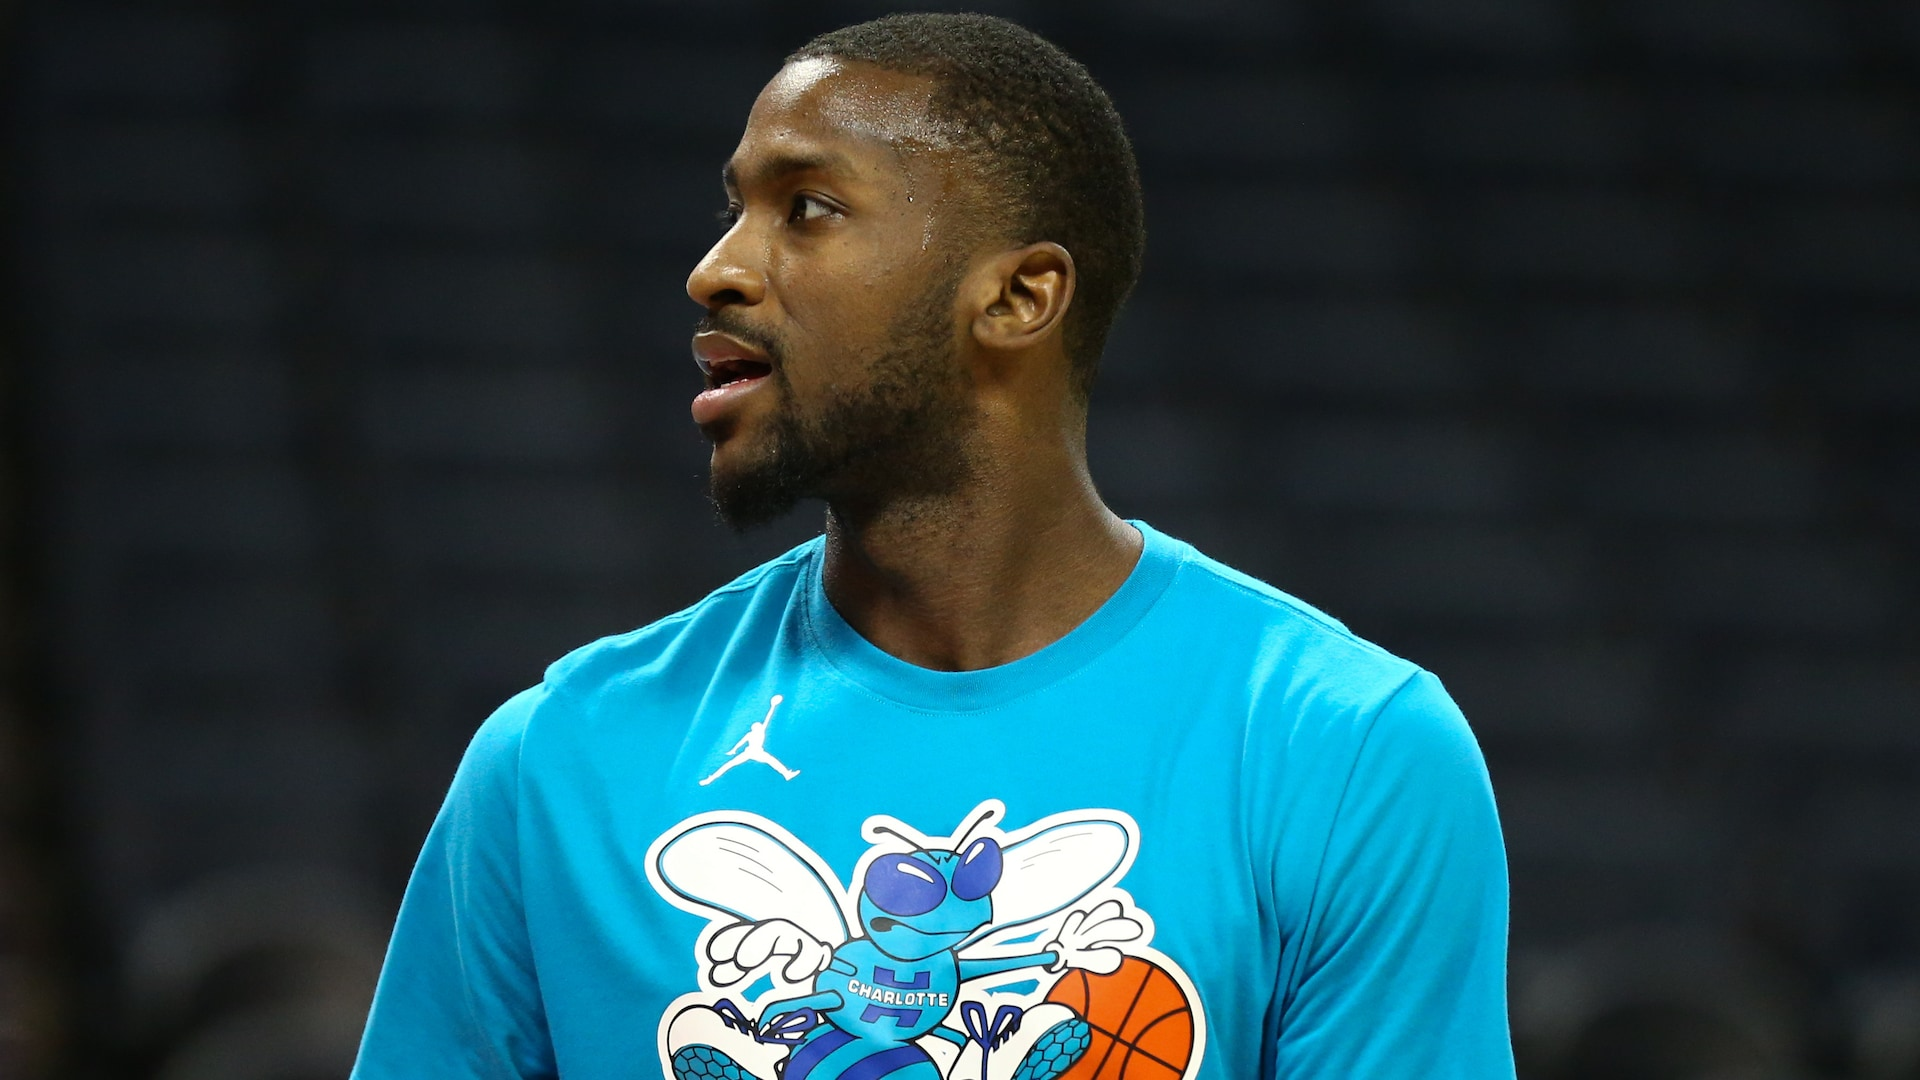 Michael Kidd-Gilchrist signs with Mavericks